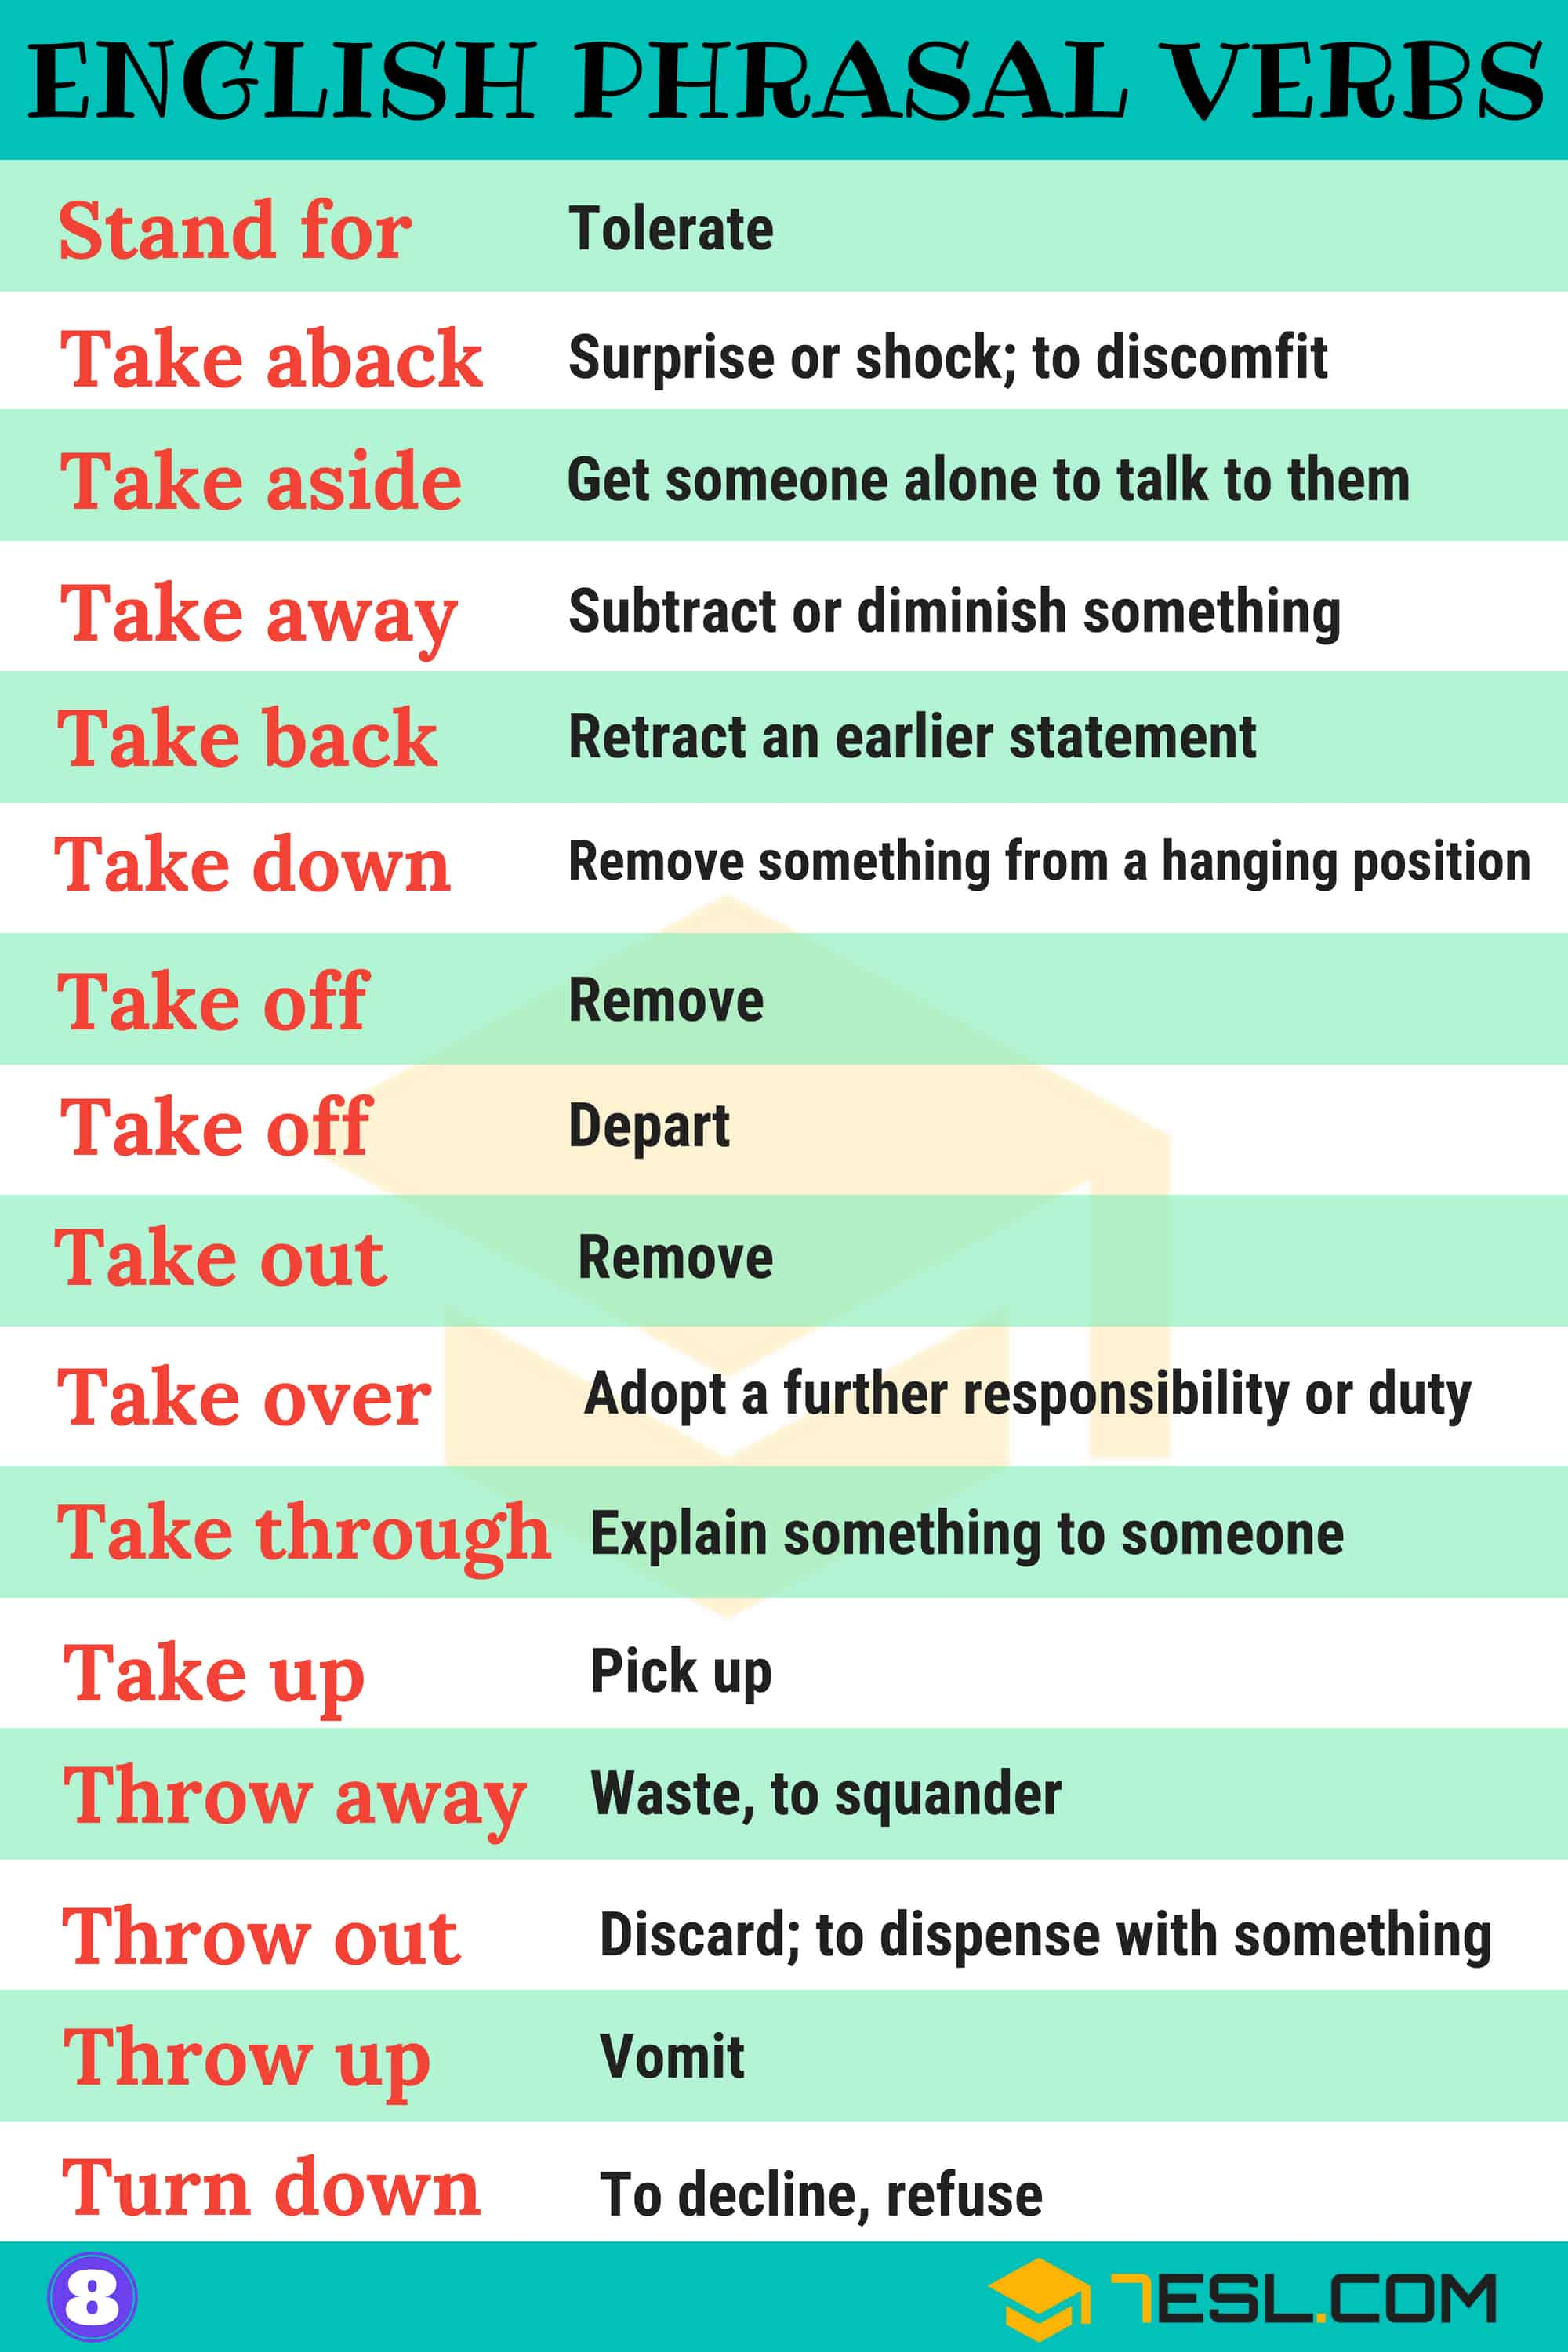 Commonly Used English Phrasal Verbs List | Image 8